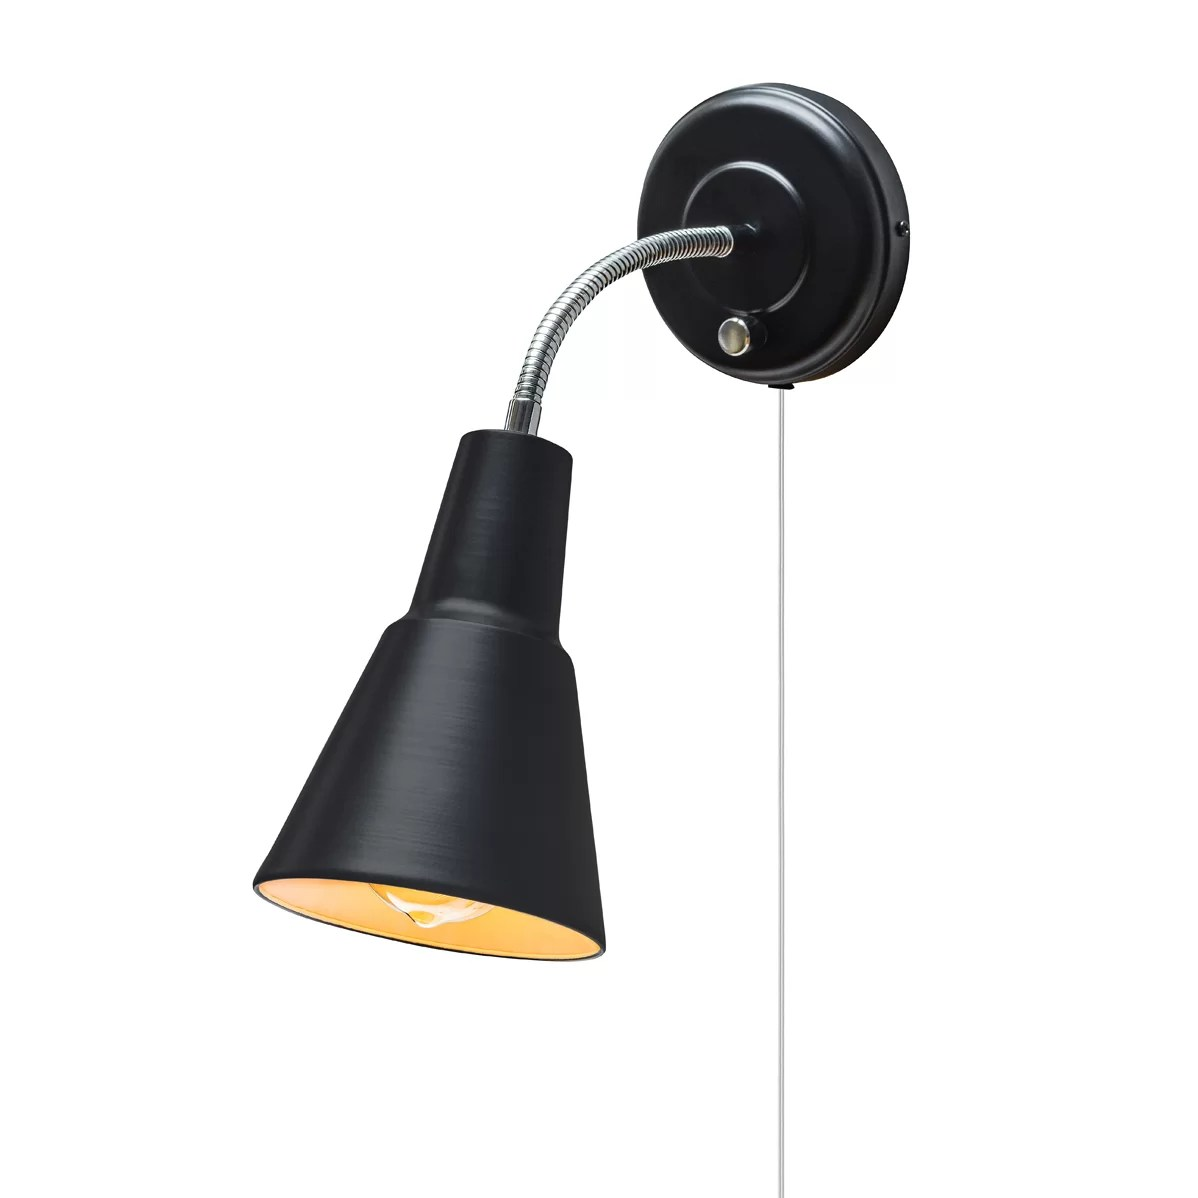 Globe Electric Company Adison 1 Light Plug In Task Wall Sconce with Hardwire Conversion Kit